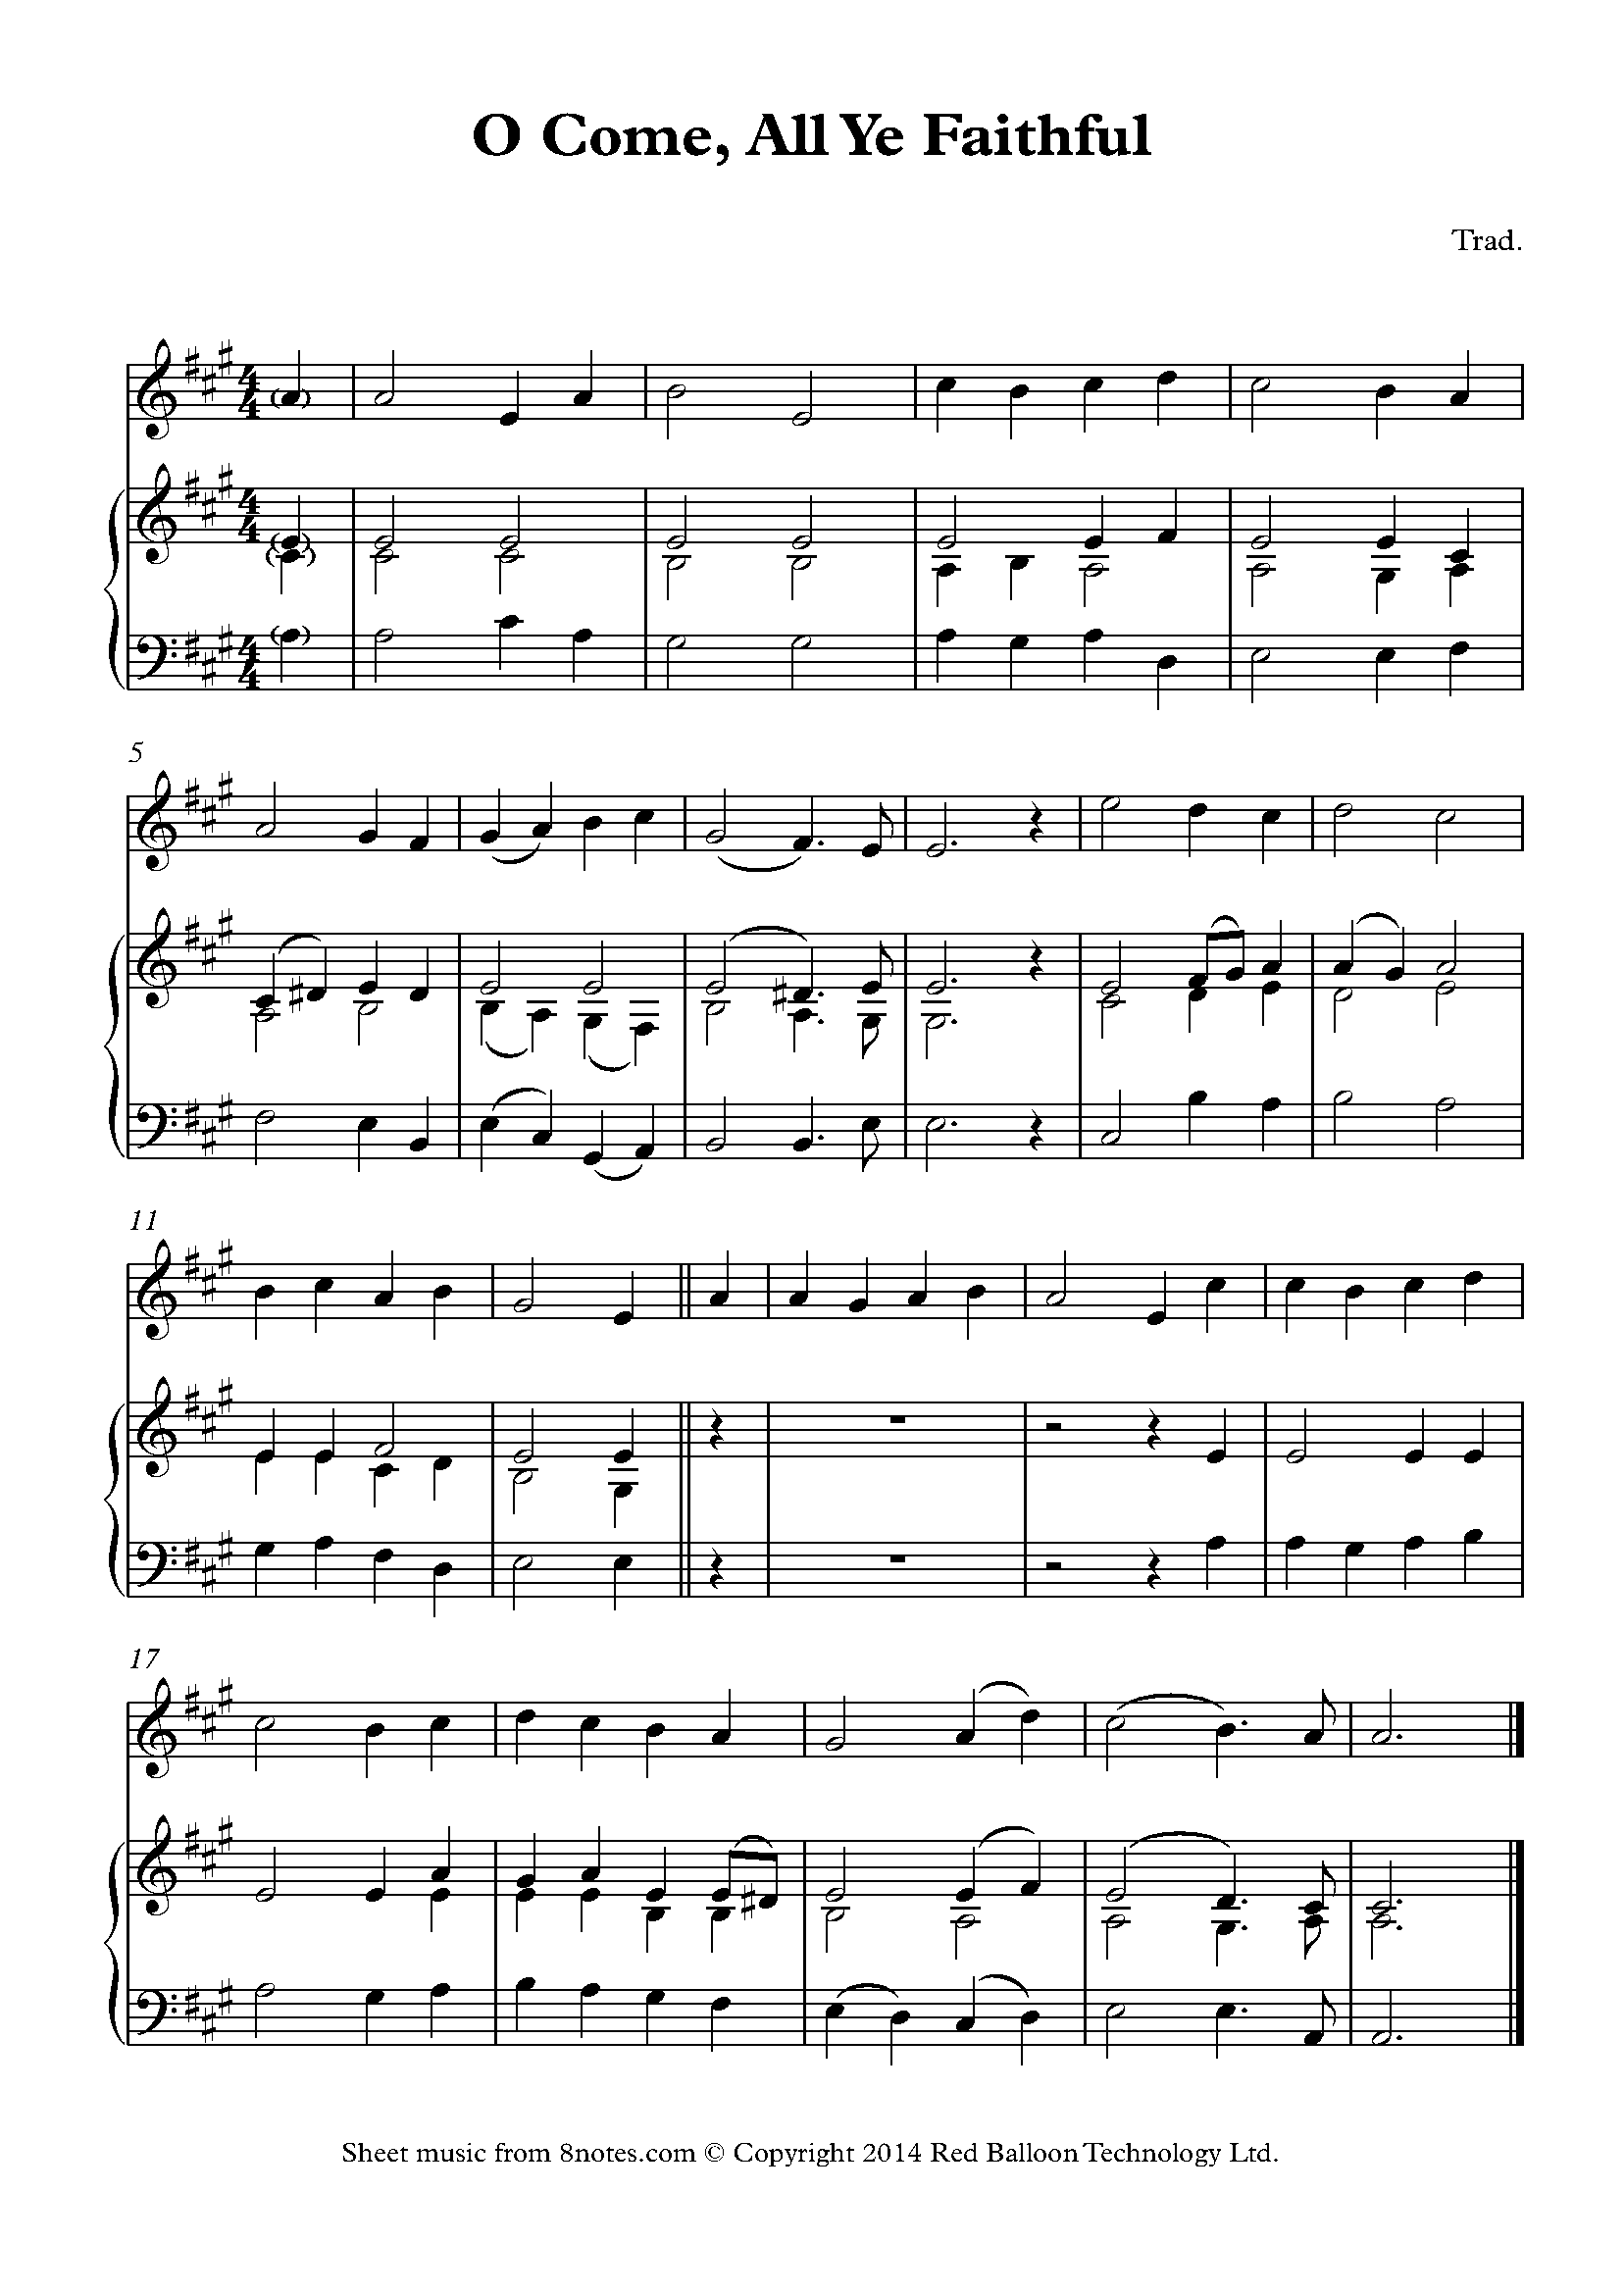 O come all ye faithful sheet music for violin free violin sheet o come all ye faithful sheet music for violin hexwebz Image collections